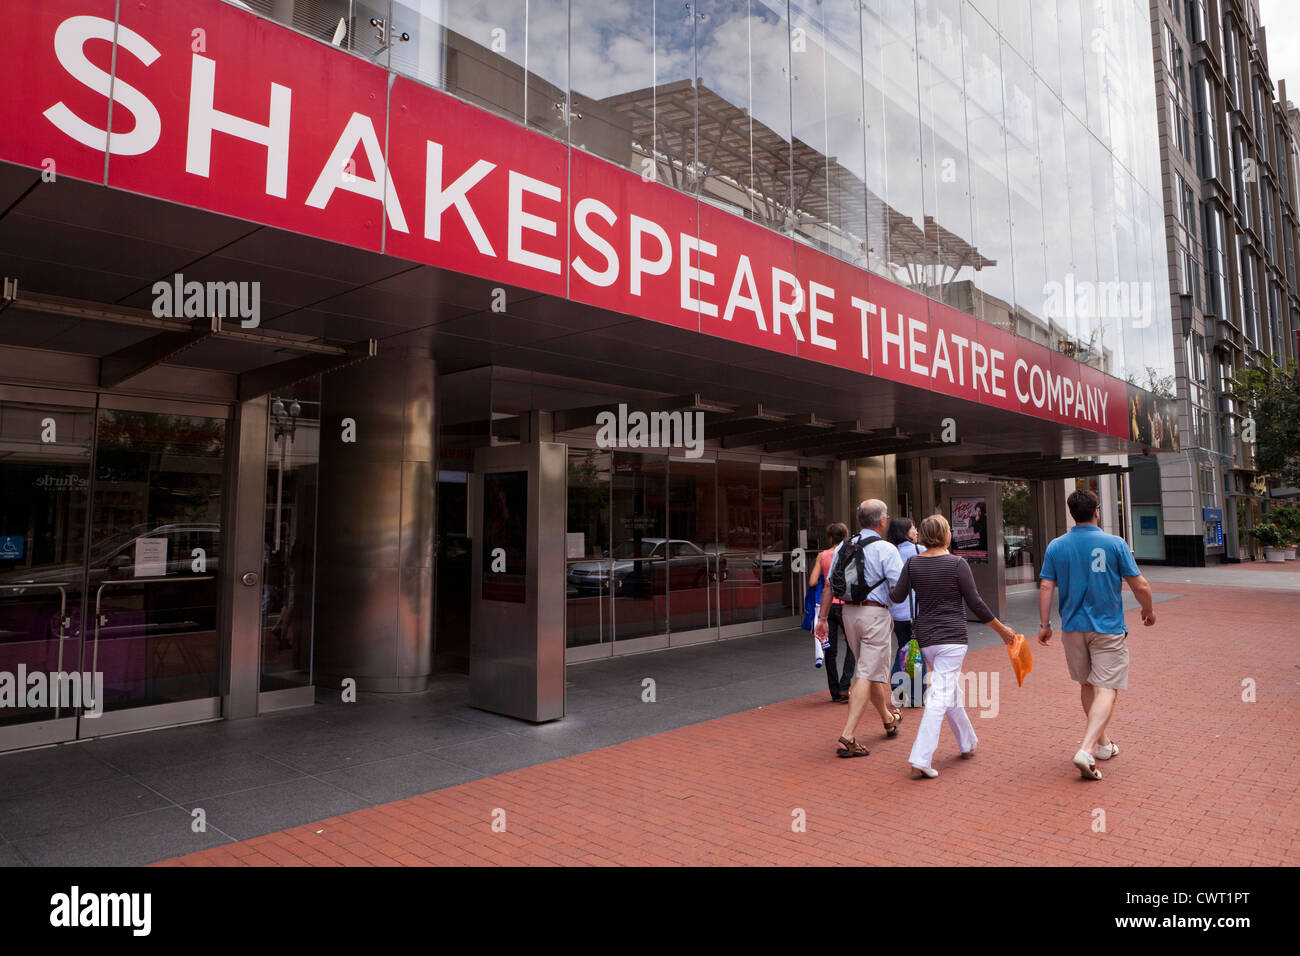 Shakespeare Theatre Company Building - Washington, DC Stockbild